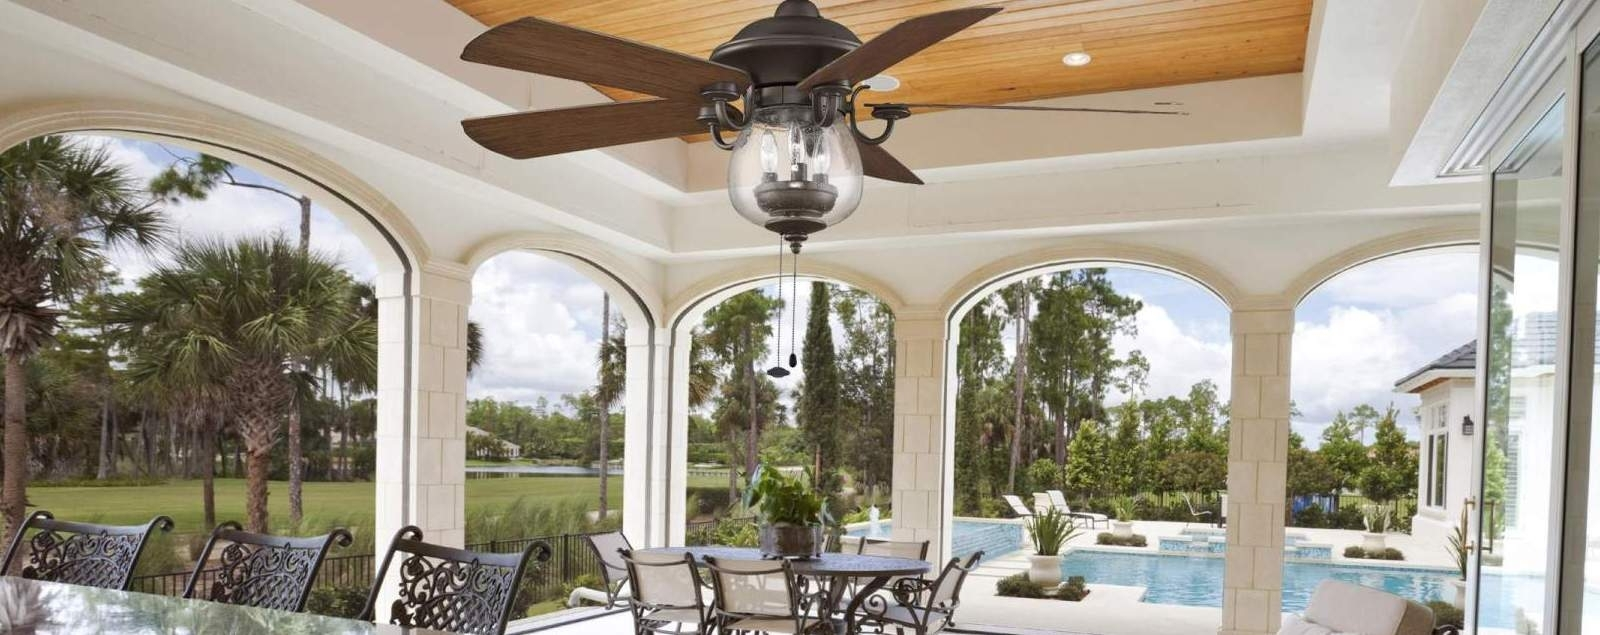 Favorite High Output Outdoor Ceiling Fans Regarding Outdoor Ceiling Fans – Shop Wet, Dry, And Damp Rated Outdoor Fans (View 12 of 20)